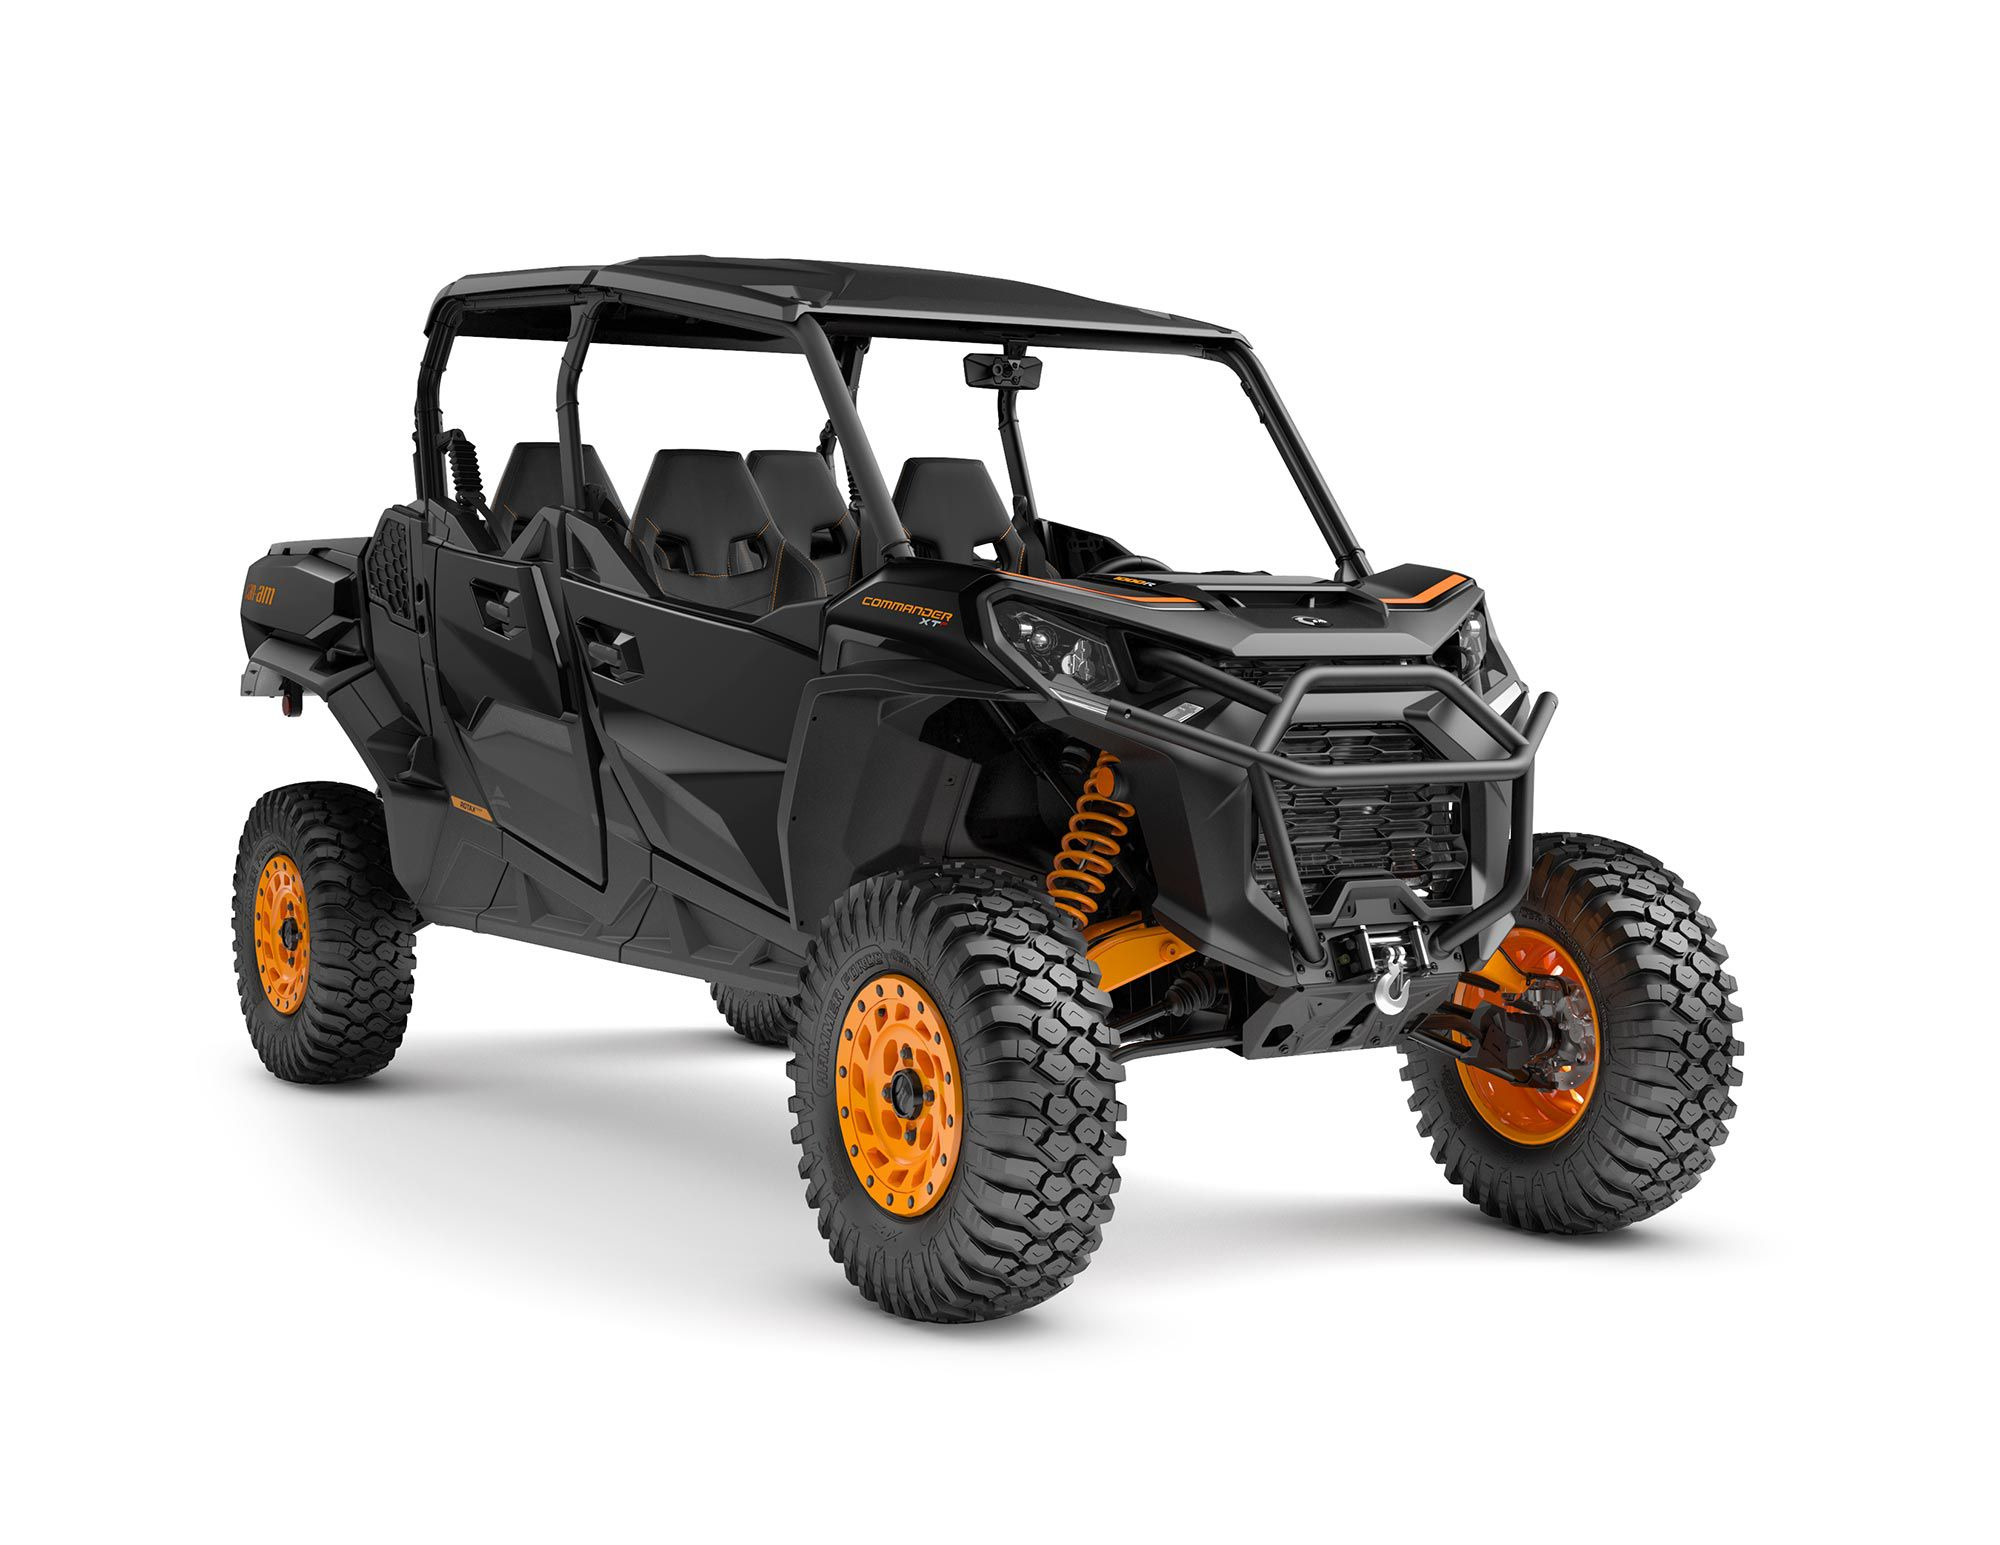 The 2022 Can-Am Commander Max XT-P promises wild trail capability and room for four.